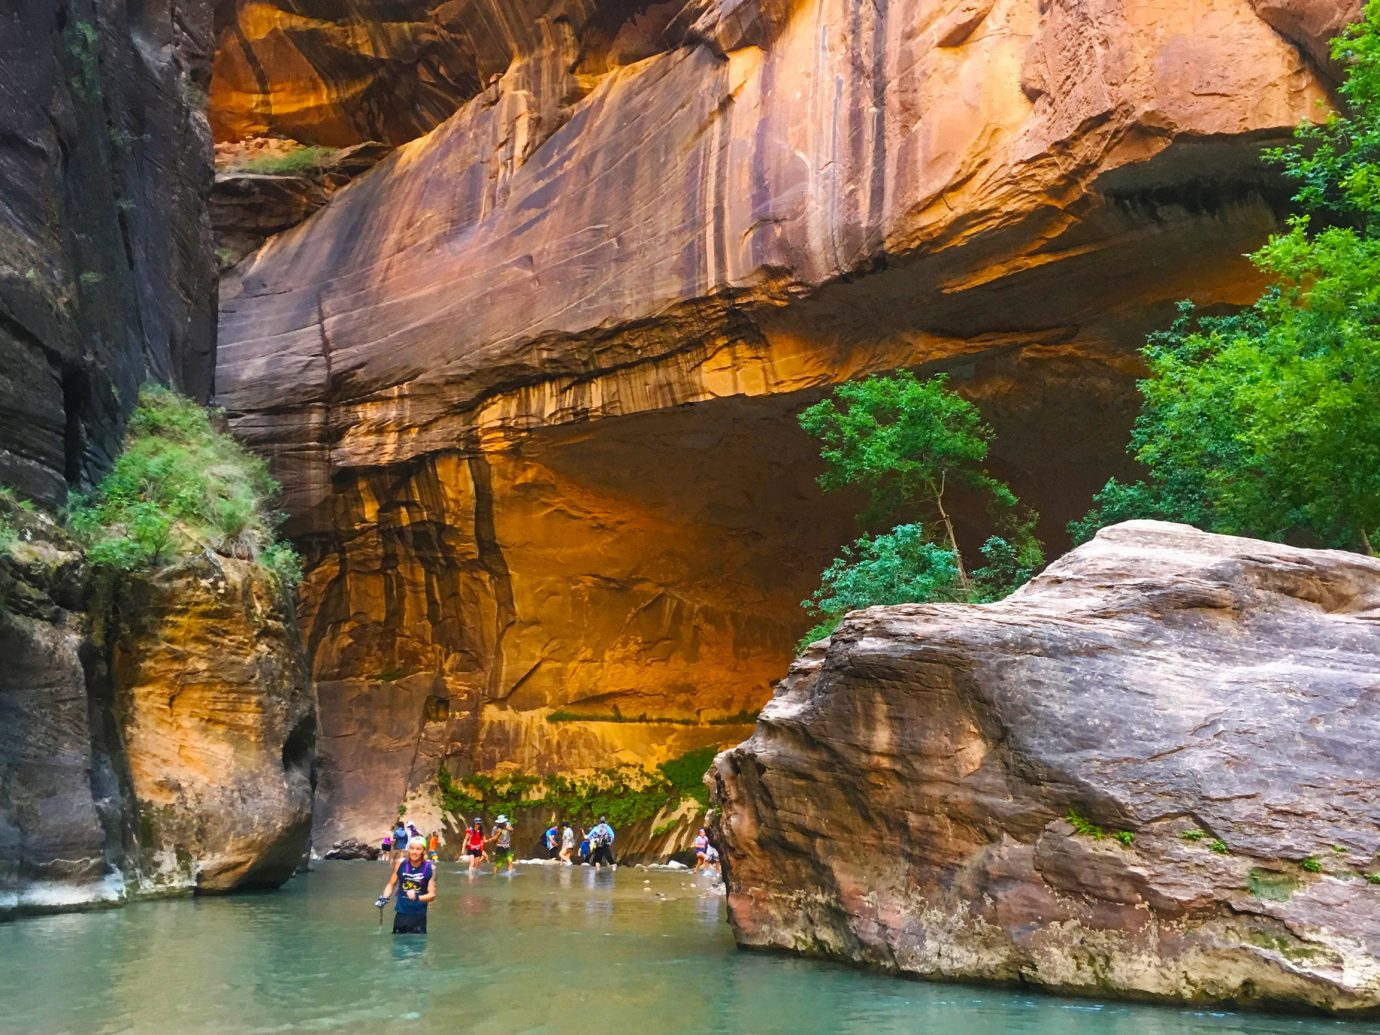 National Parks Outdoors + Adventure Trip Ideas outdoor water Nature rock valley geographical feature landform mountain sea cave canyon River cave Sea wadi cliff formation terrain pond stone surrounded